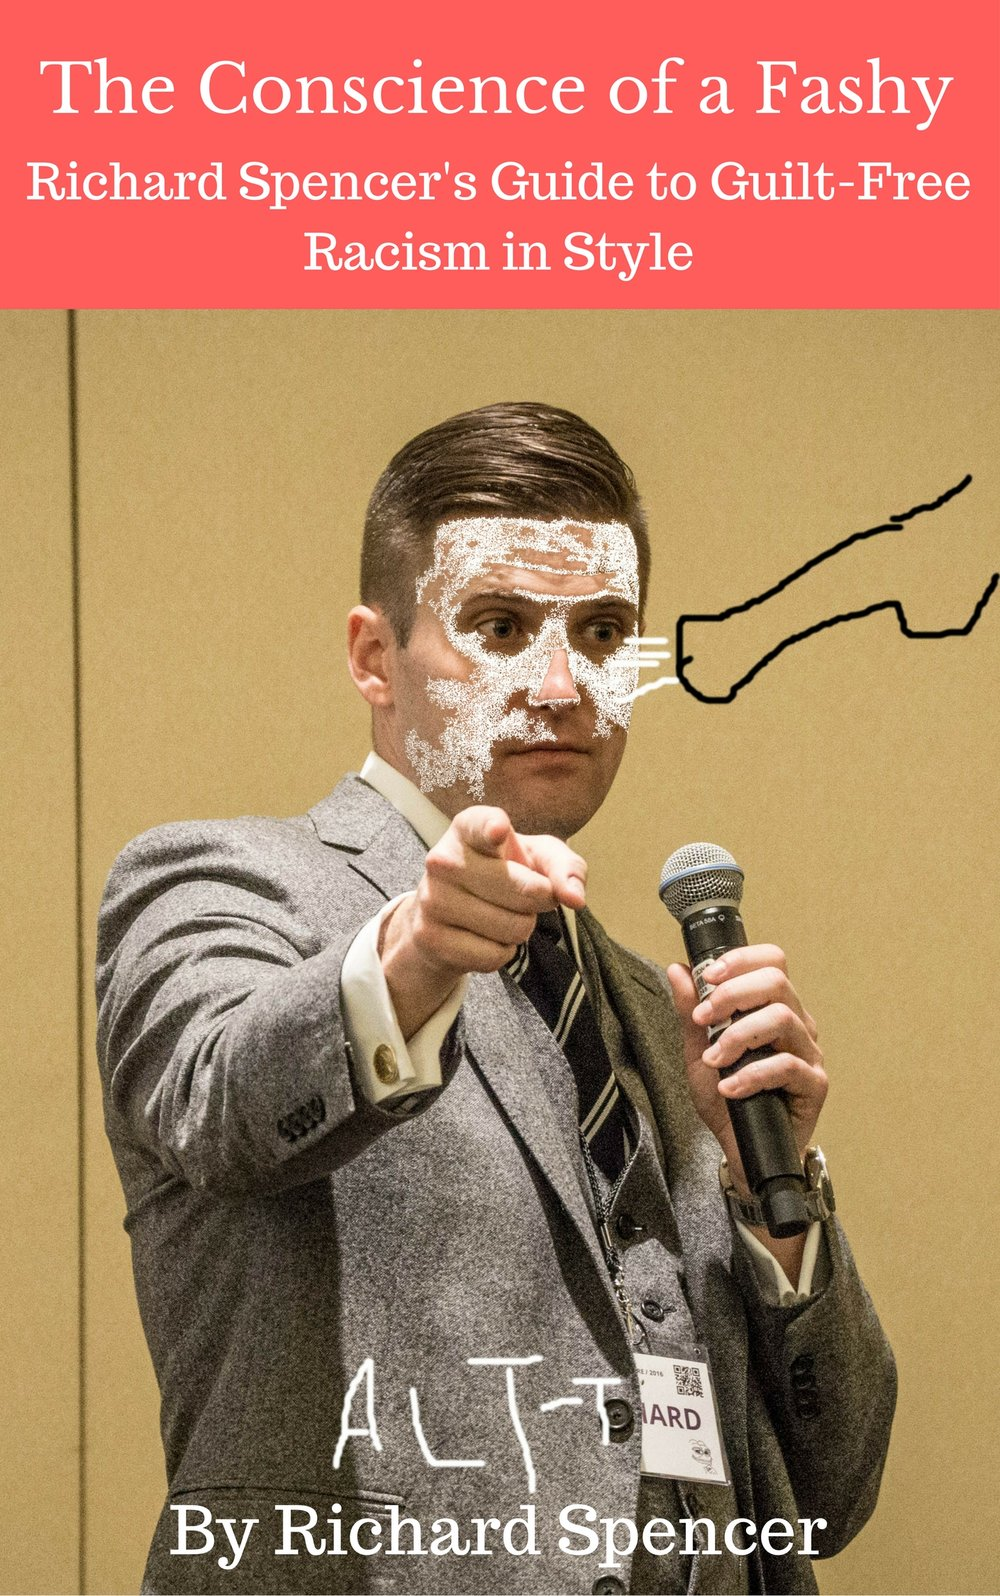 Photo of Richard Spencer by Vas Panagiotopoulos, licensed as  cc-by-2.0.  The original photo has been altered for this fake book cover.